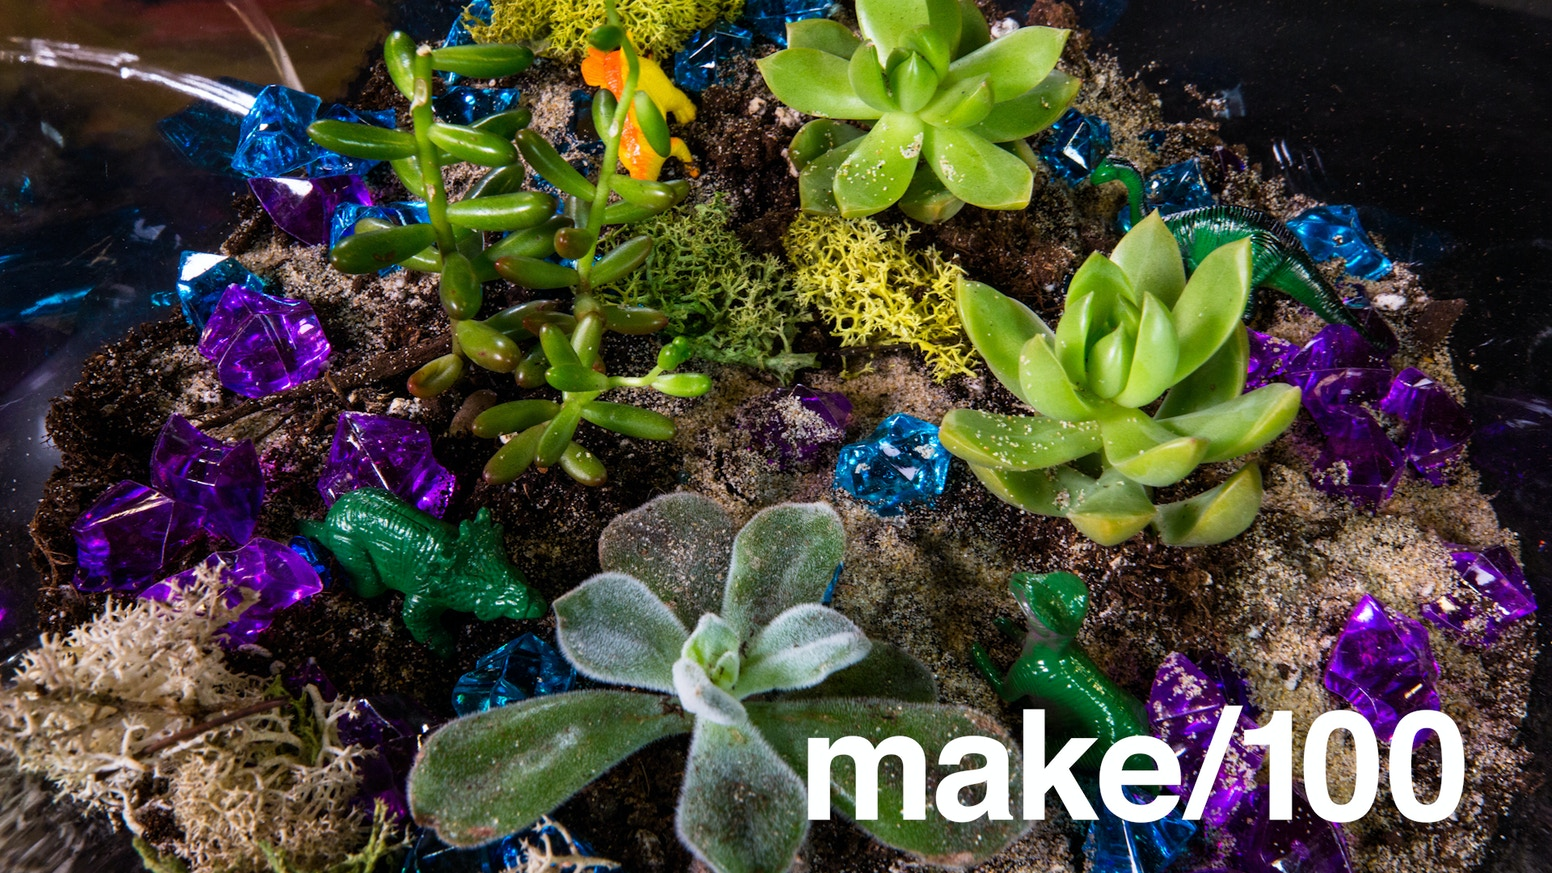 Make 100 diy terrarium kits with area 51 roswell sand by mike do it yourself terrarium kit with 4 succulents nothing to wait for to grow solutioingenieria Images